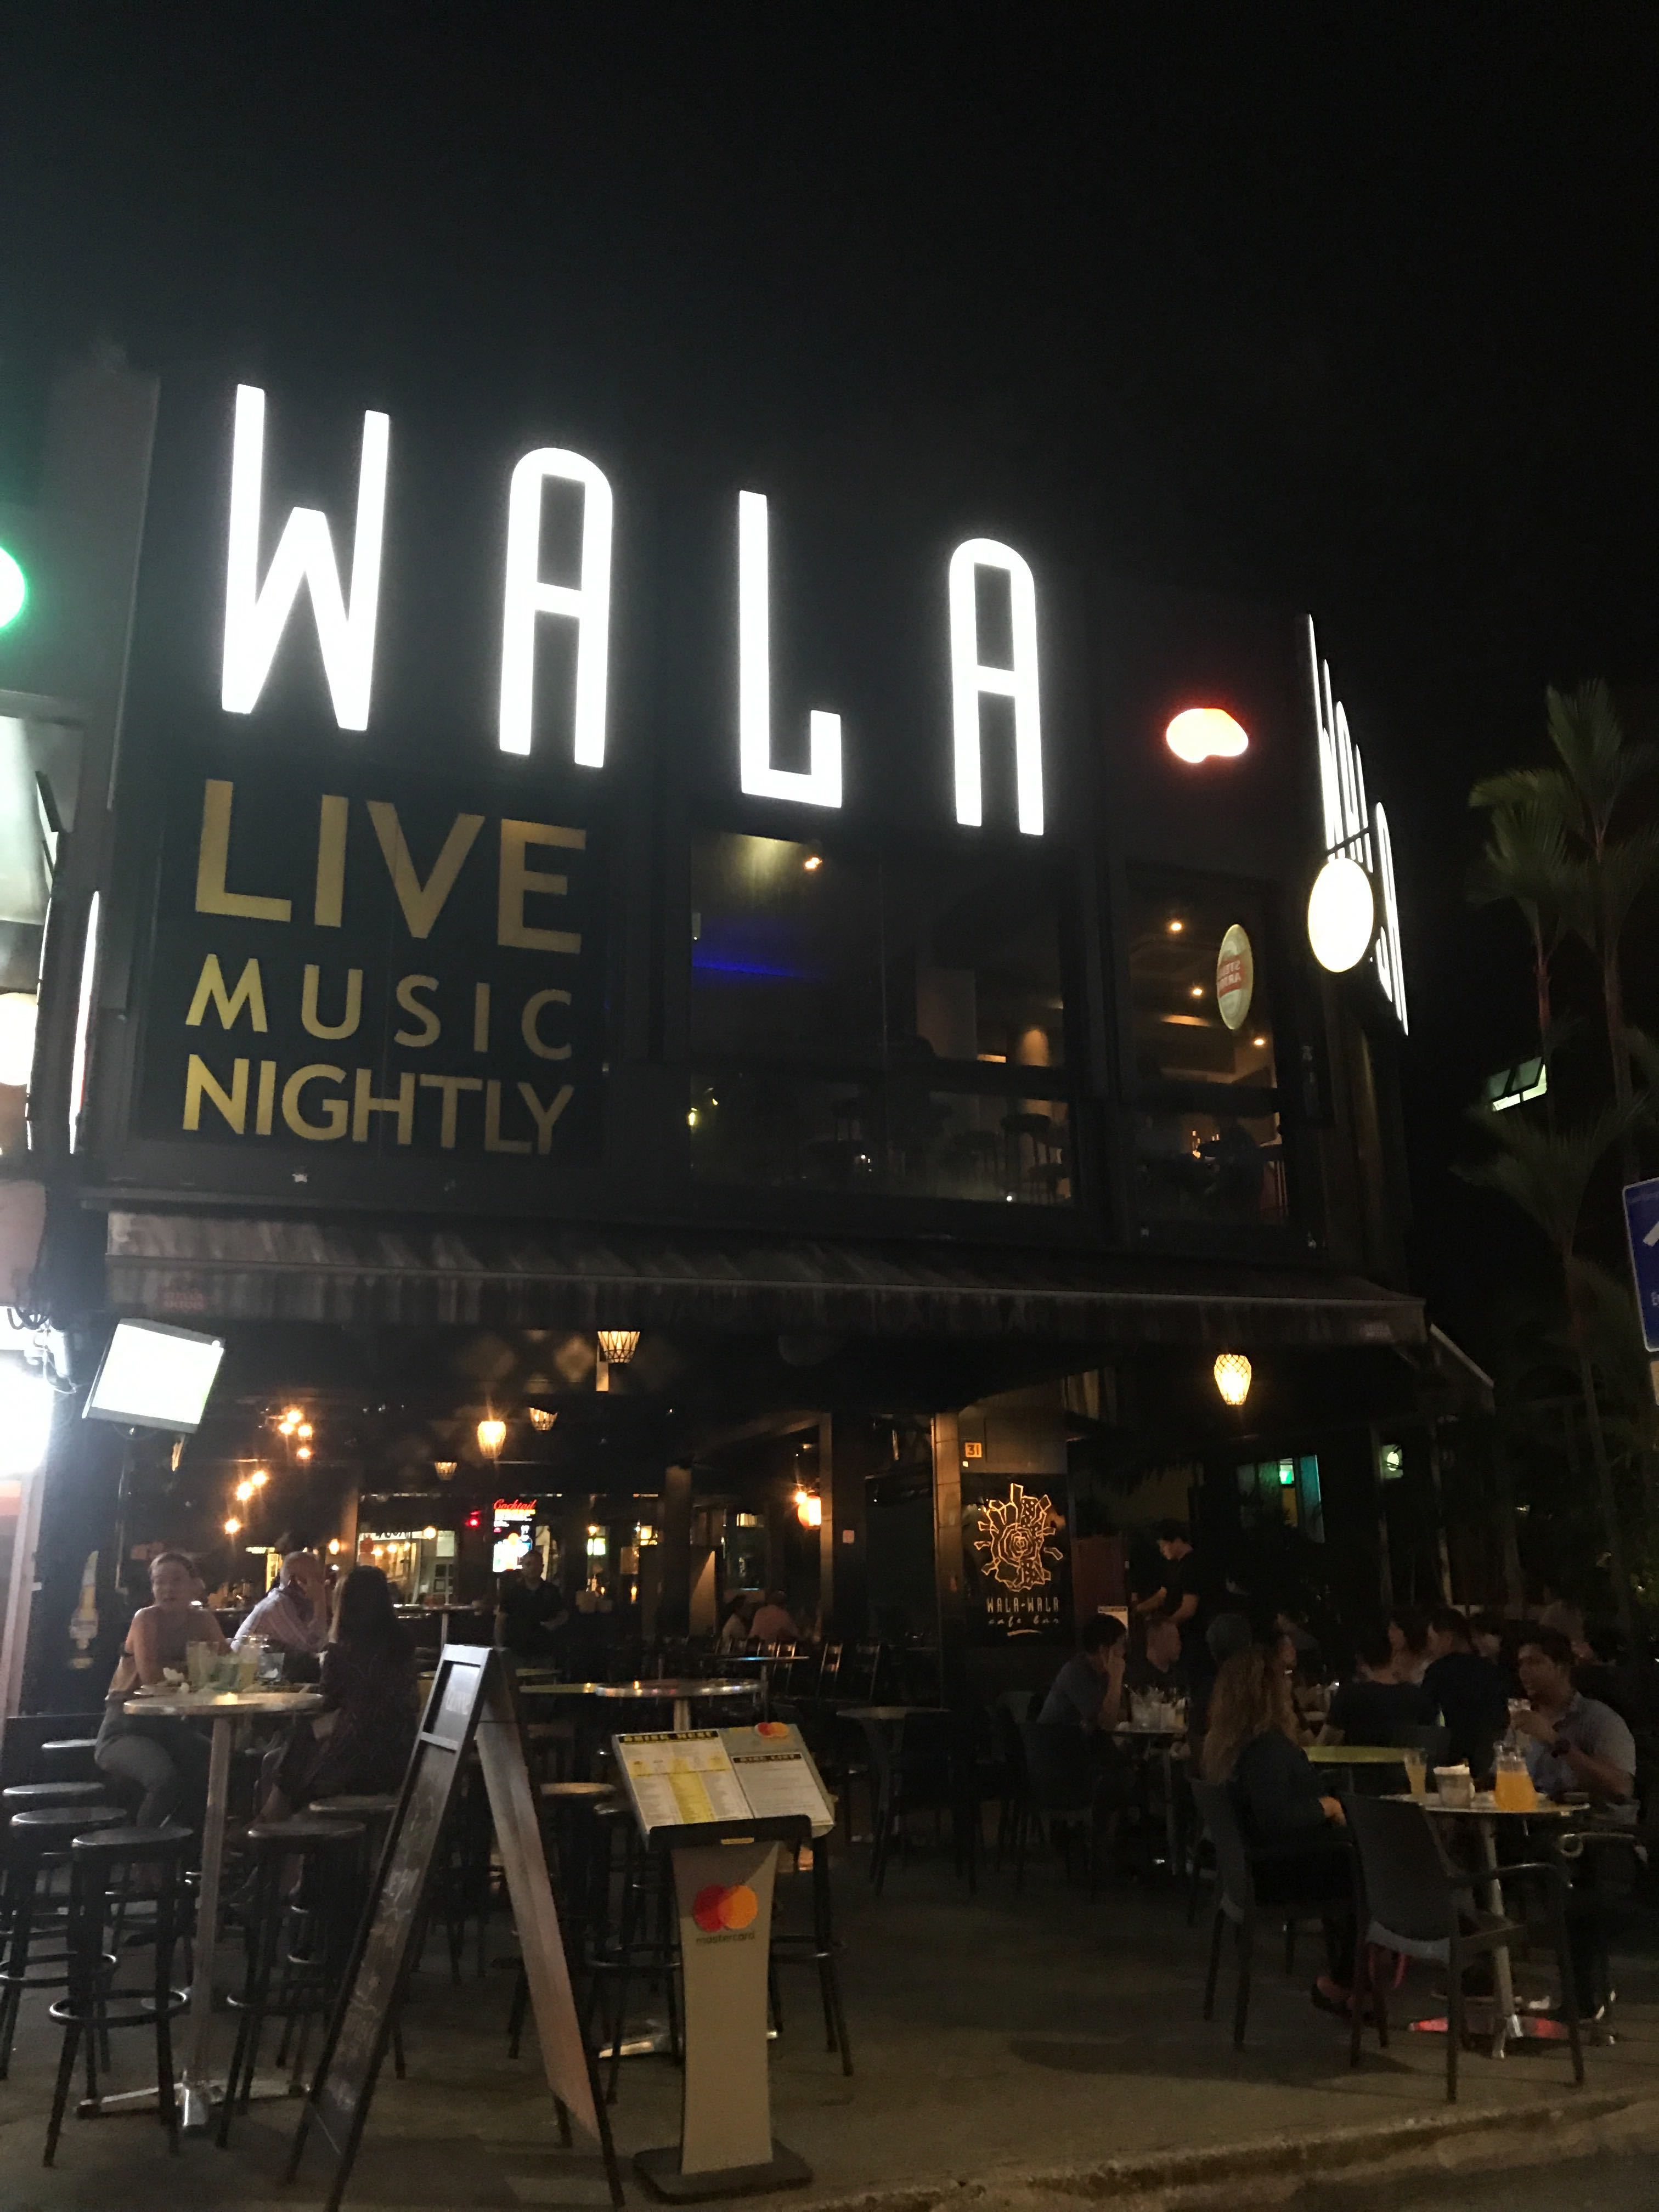 The lighting in Wala Wala provides a soothing ambience for customers.